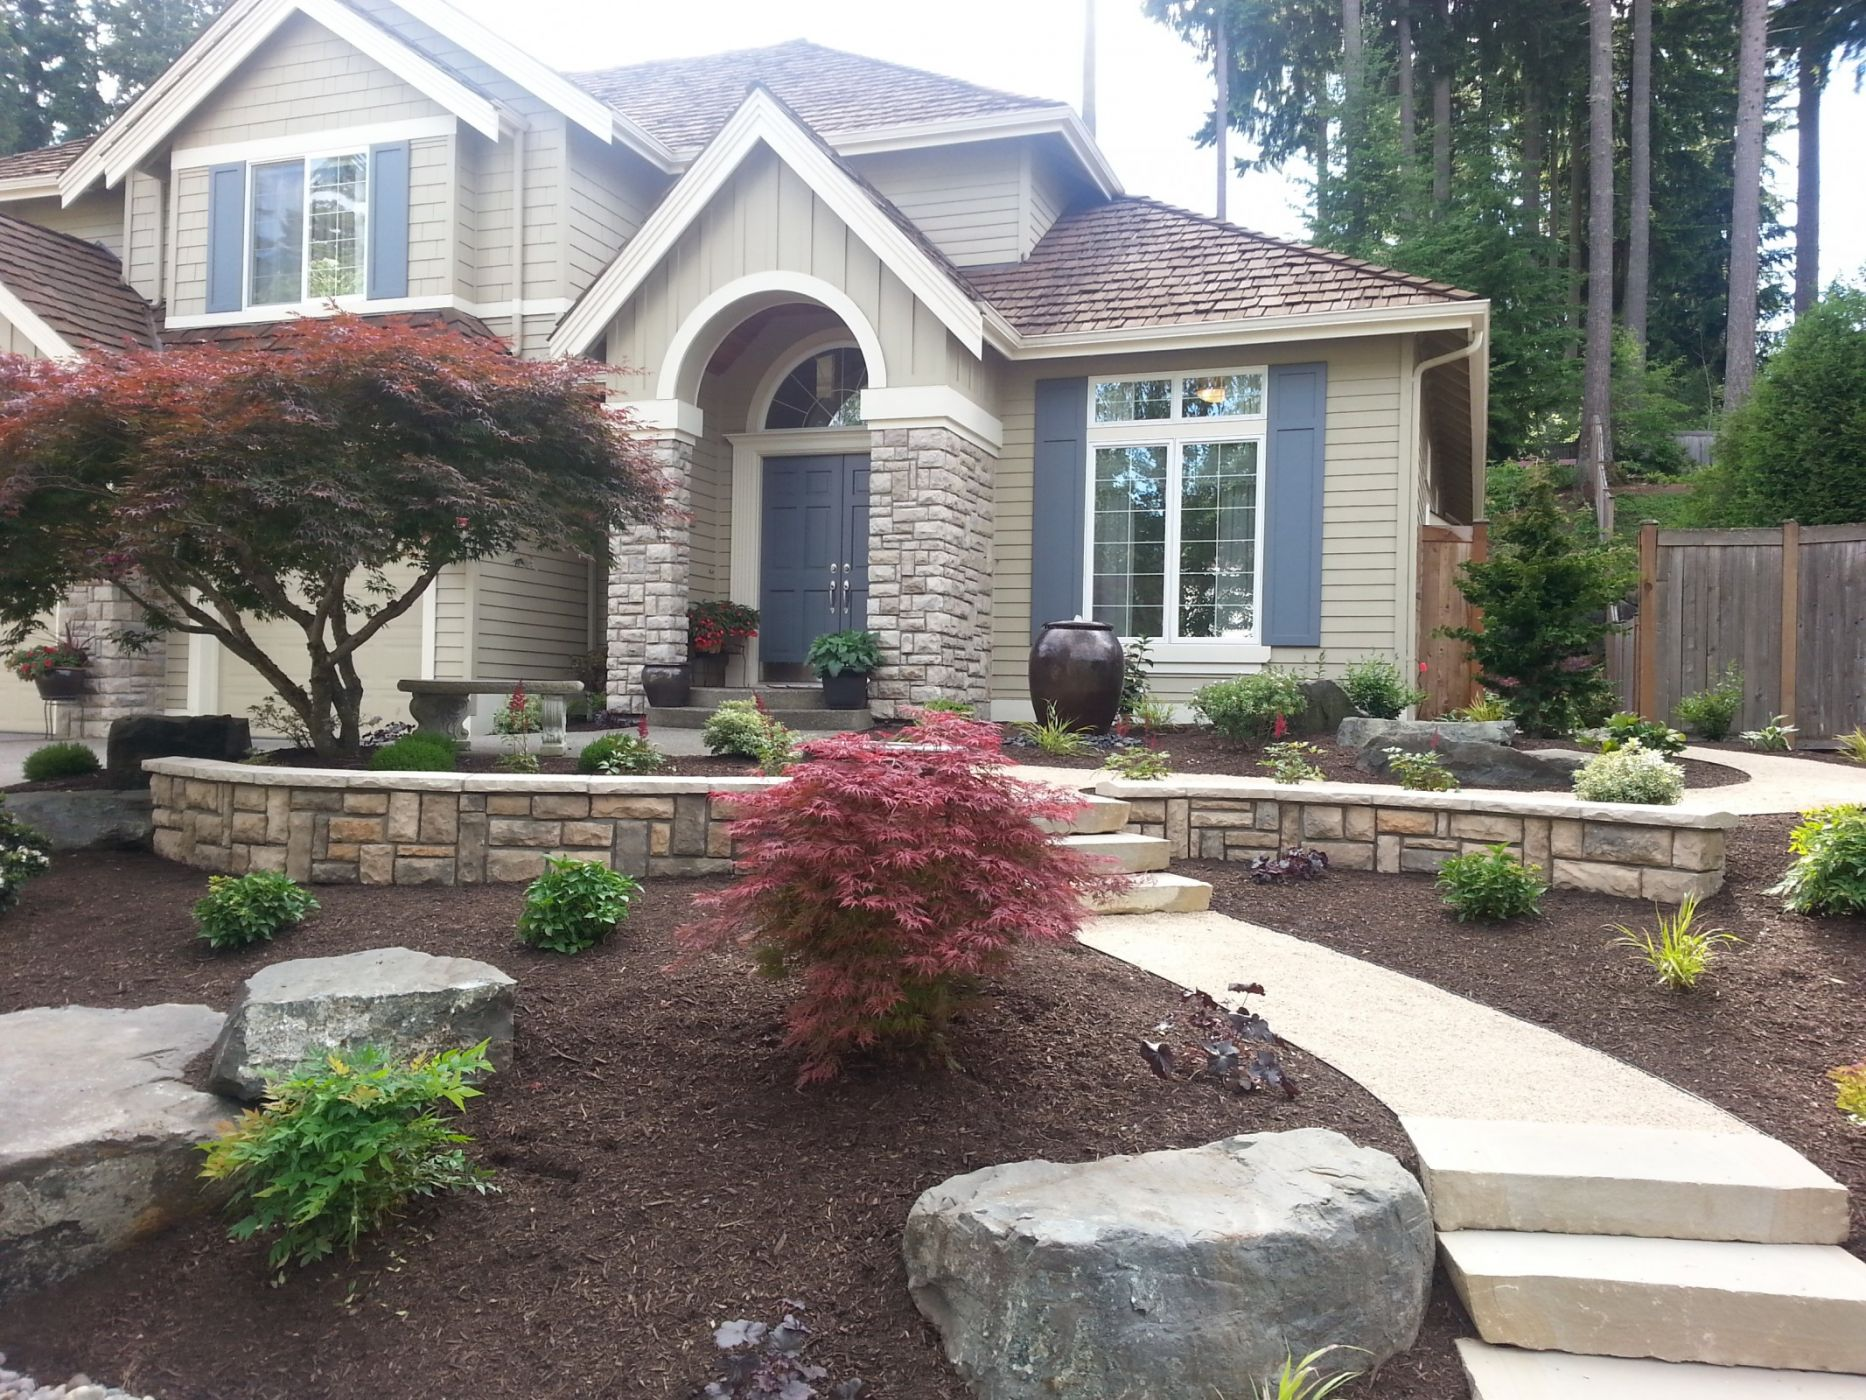 Janika landscaping ideas front yard illinois here for Landscape design front of house